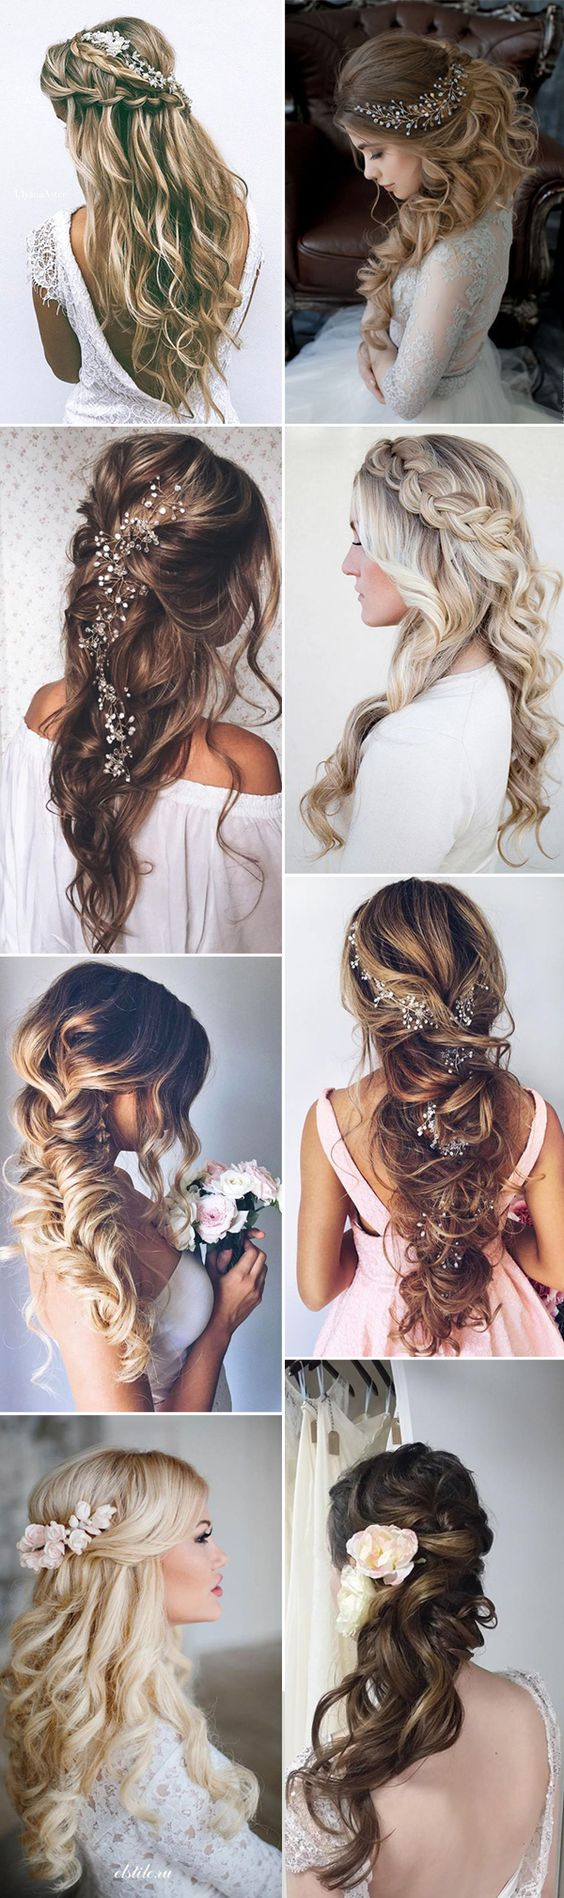 Hairstyles-Gorgeous Wedding Forٍ Chic Bride On Class World 11